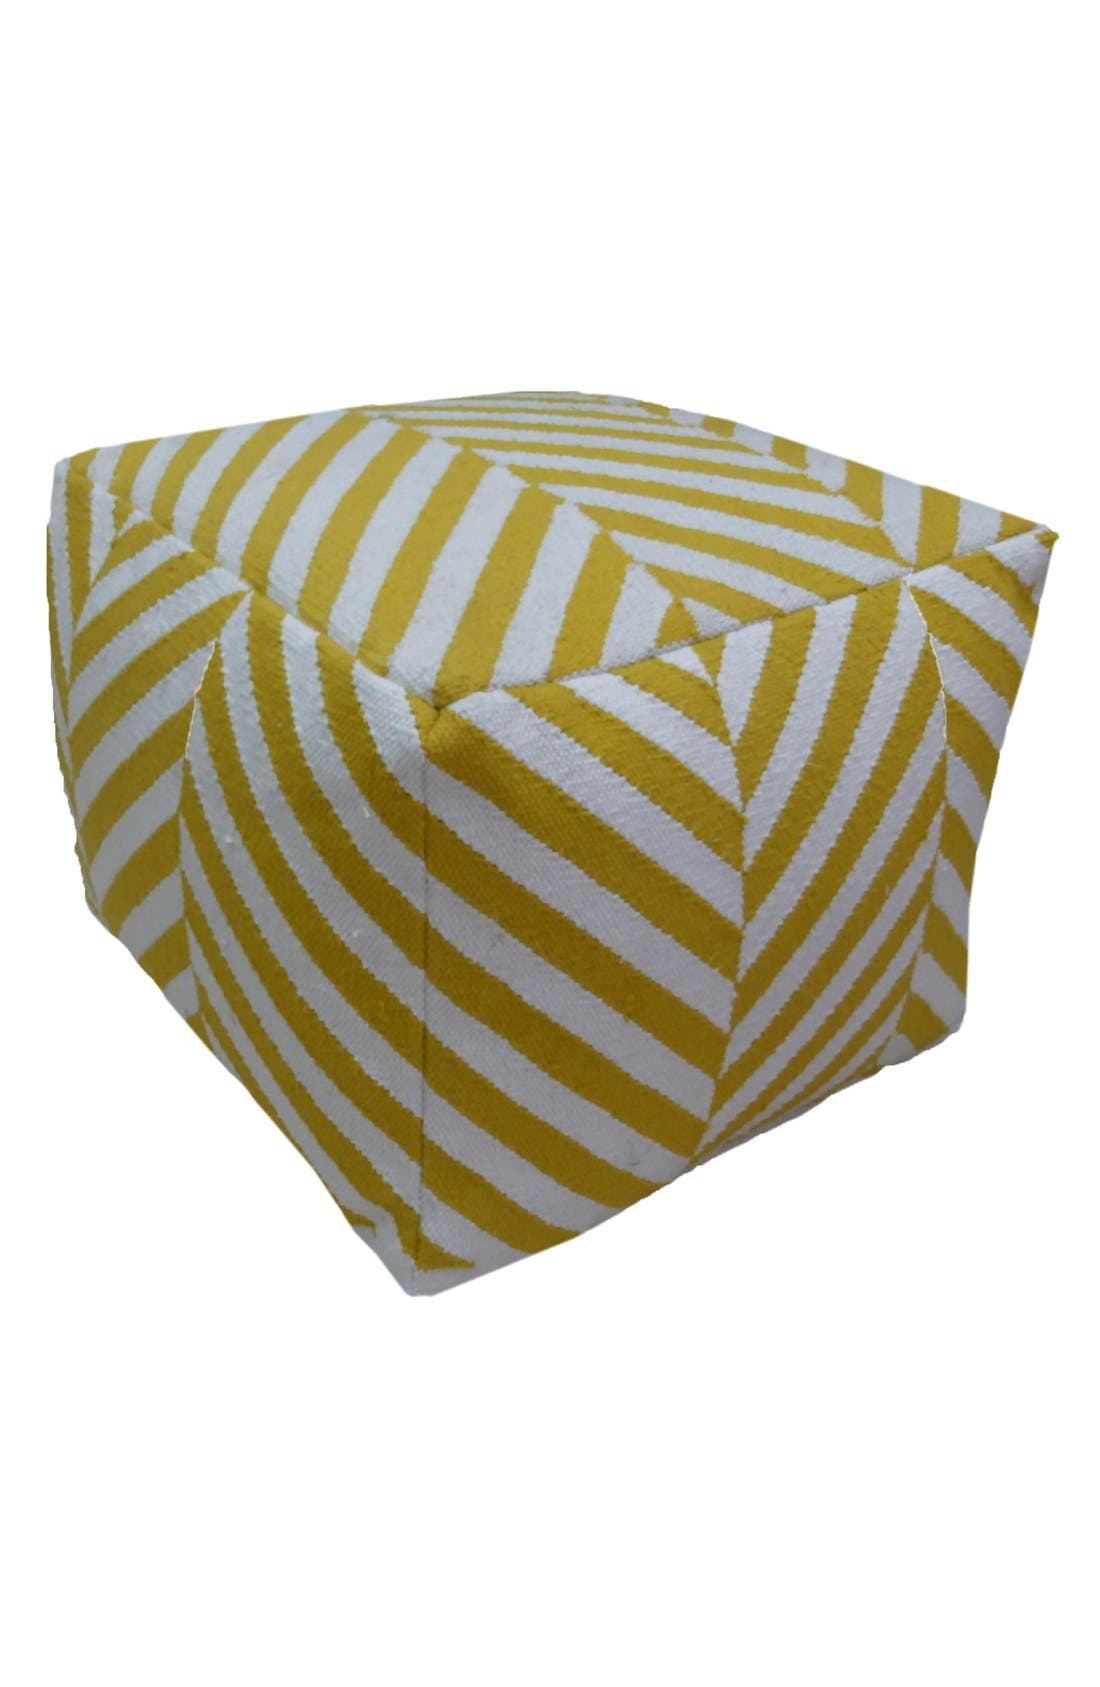 Alternate Image 1 Selected - AM Home Textiles Wide Stripe Floor Pouf